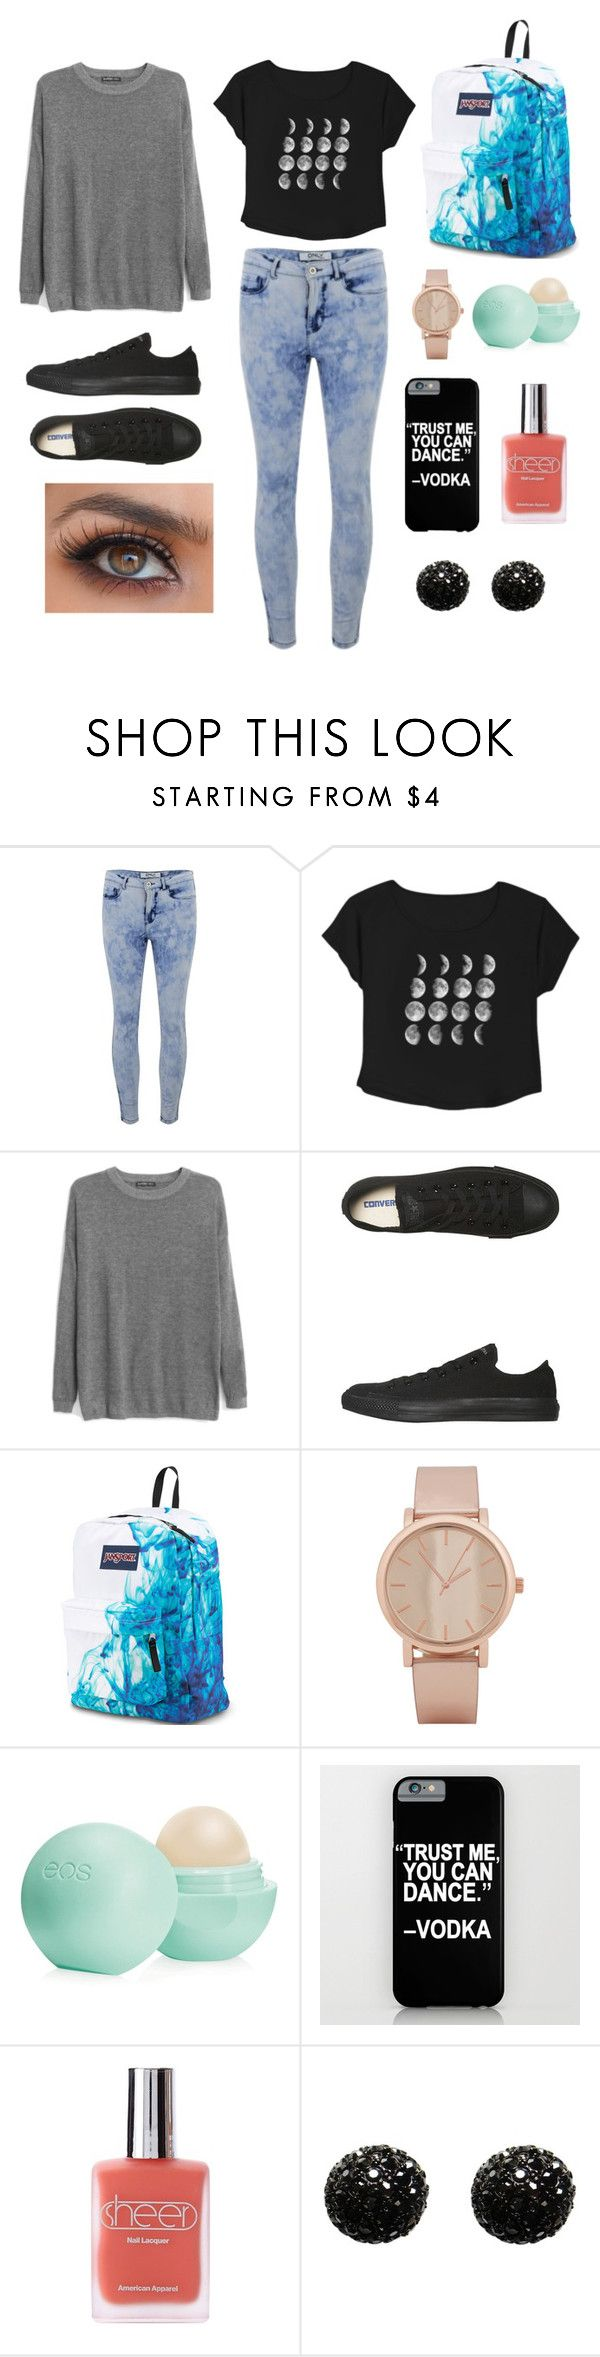 """School outfit tumblr"" by olive-barratt ❤ liked on Polyvore featuring ONLY, MANGO, Converse, JanSport, ALDO, Eos, American Apparel and Kenneth Jay Lane"